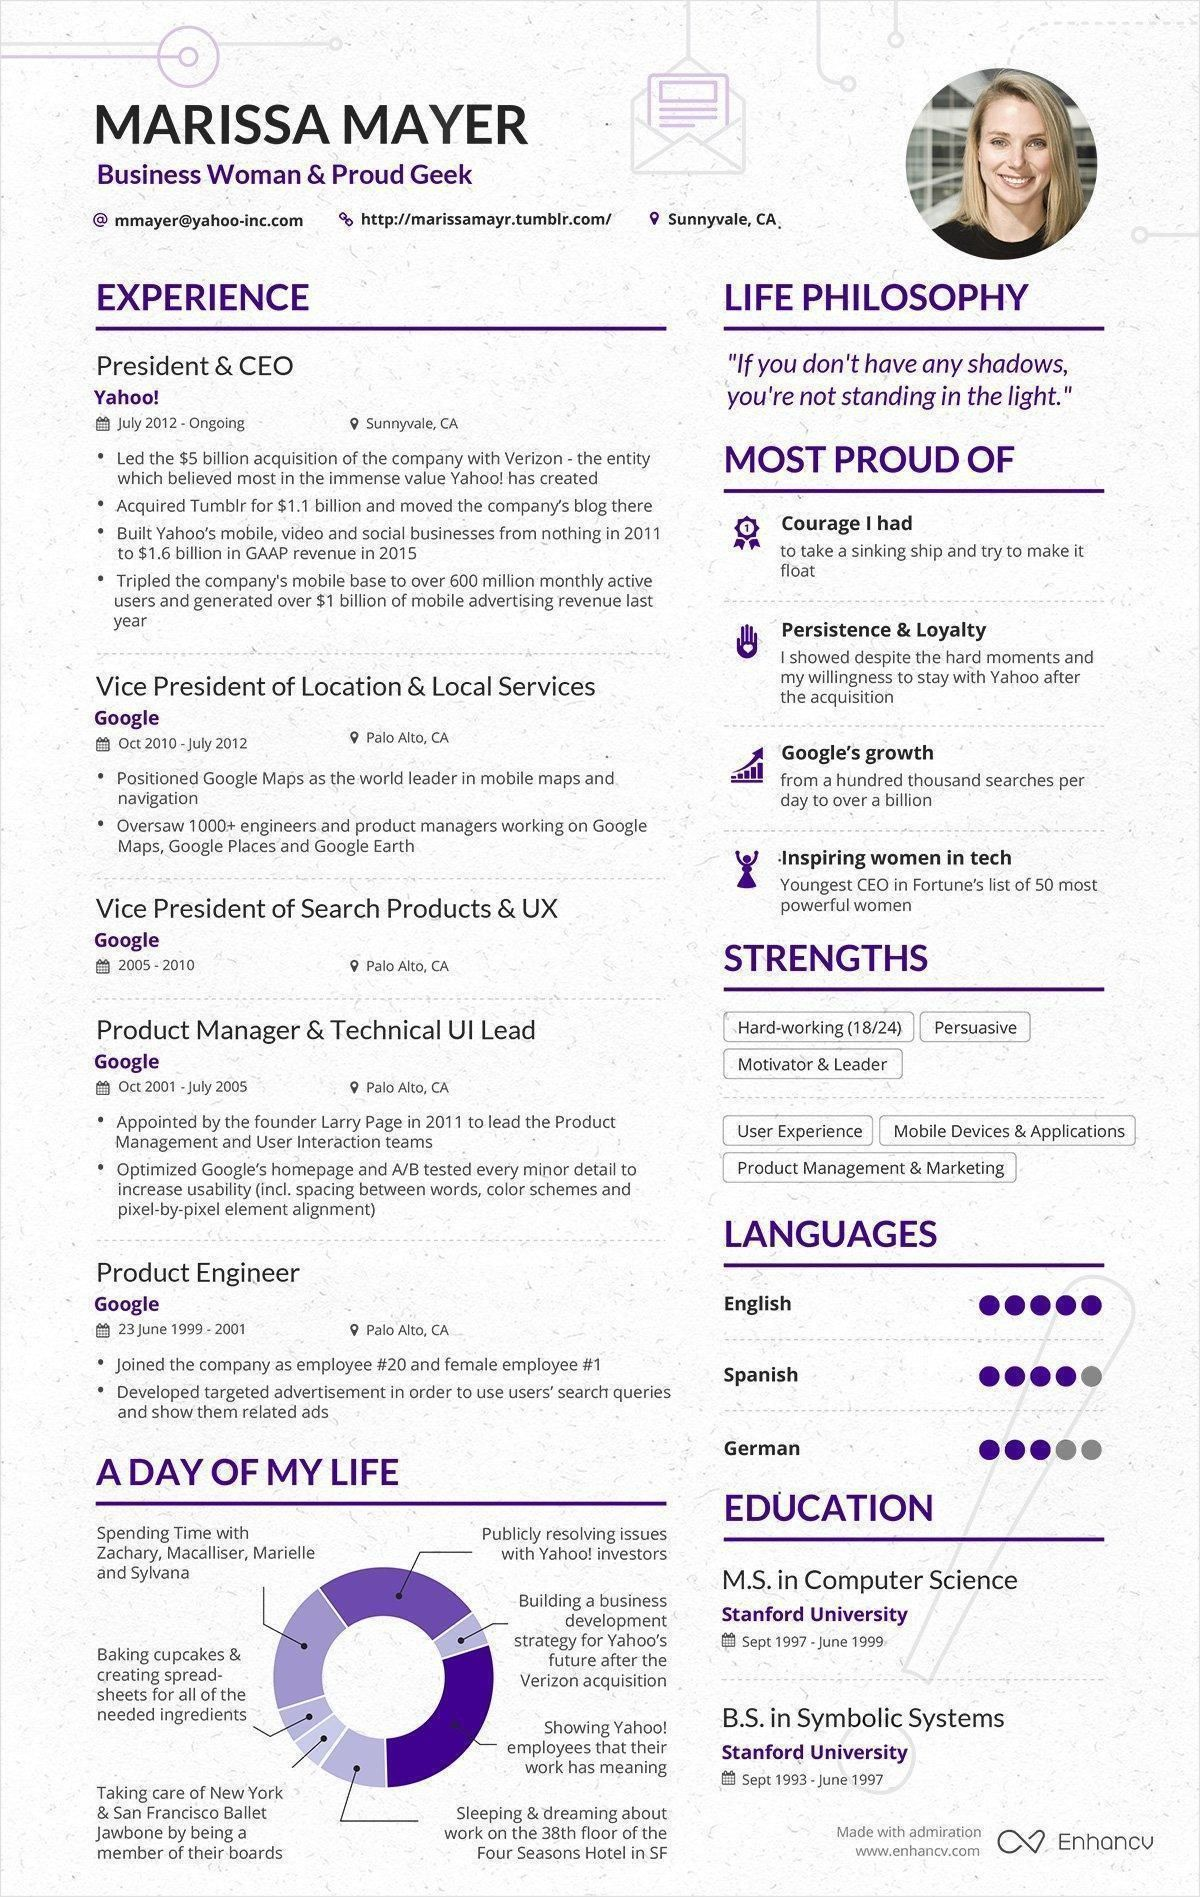 Charming 1 Page Resume Sample Tall 1.5 Button Template Clean 100th Day Hat Template 12 Piece Puzzle Template Youthful 16 Team Bracket Template Black2 Page Brochure Template Learn How To Remove Acne Scars, Pimple Scars With These Simple ..